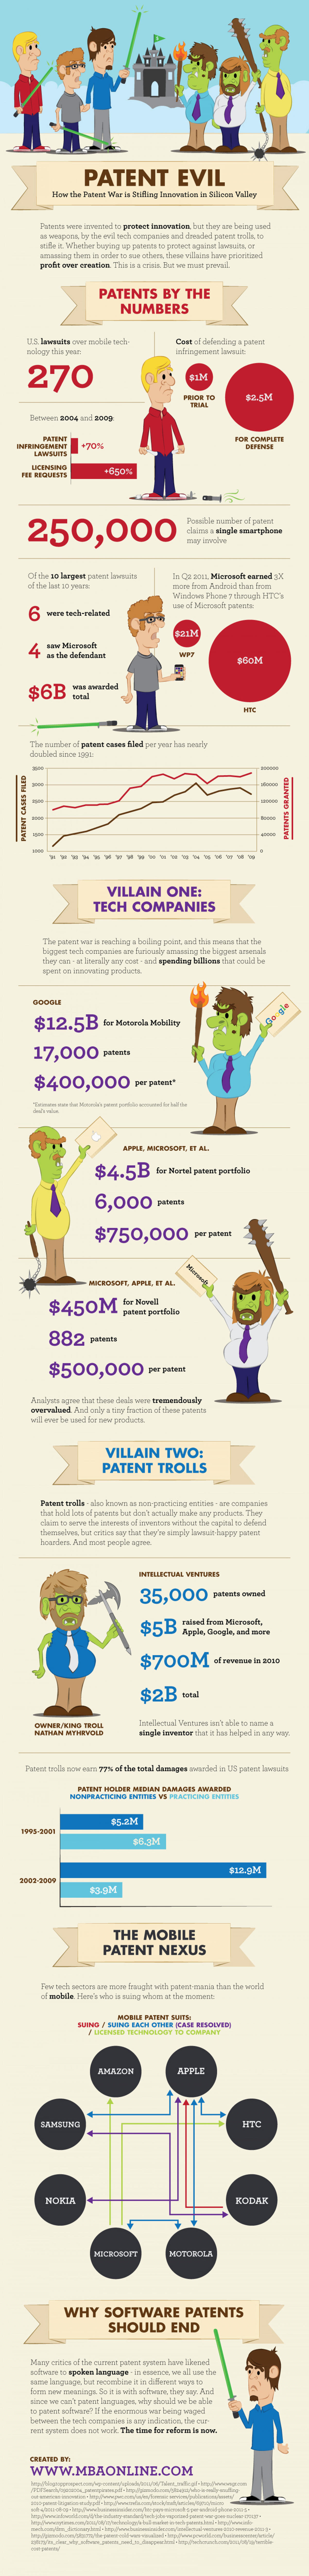 Patent Evil: How The Patent War Is Stifling Innovation In Silicon Valley  Infographic